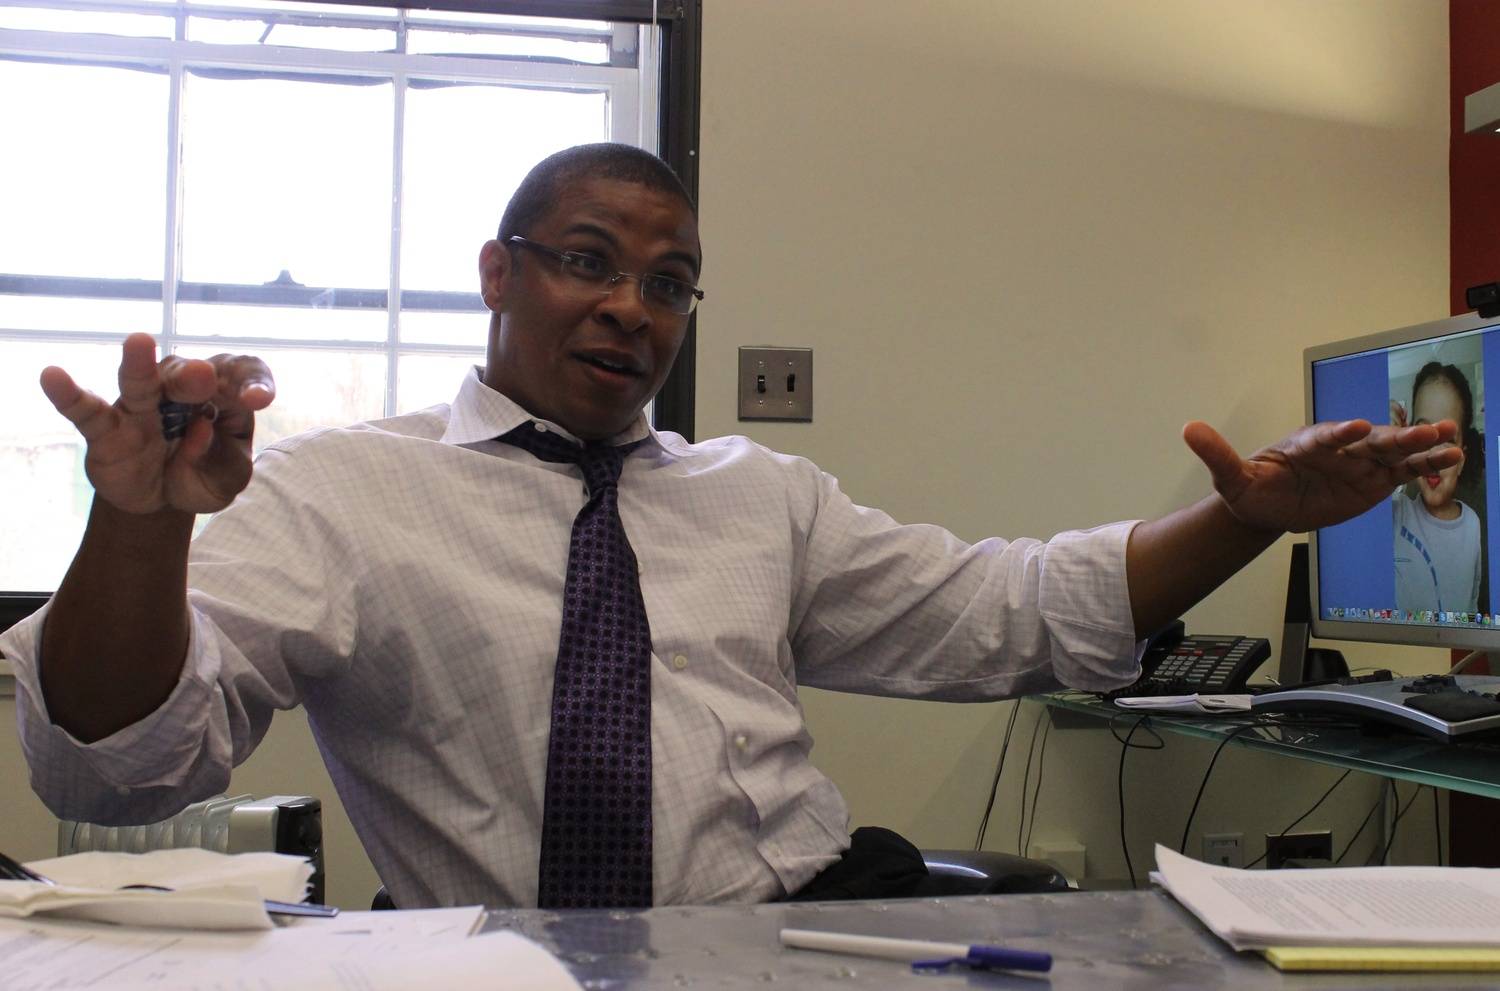 Roland G. Fryer, this year's John Bates Clark Medal recipient, speaks about his research on education for disadvantaged youths, influential mentors, and his two-year-old daughter on Monday afternoon in his office at Littauer Center.